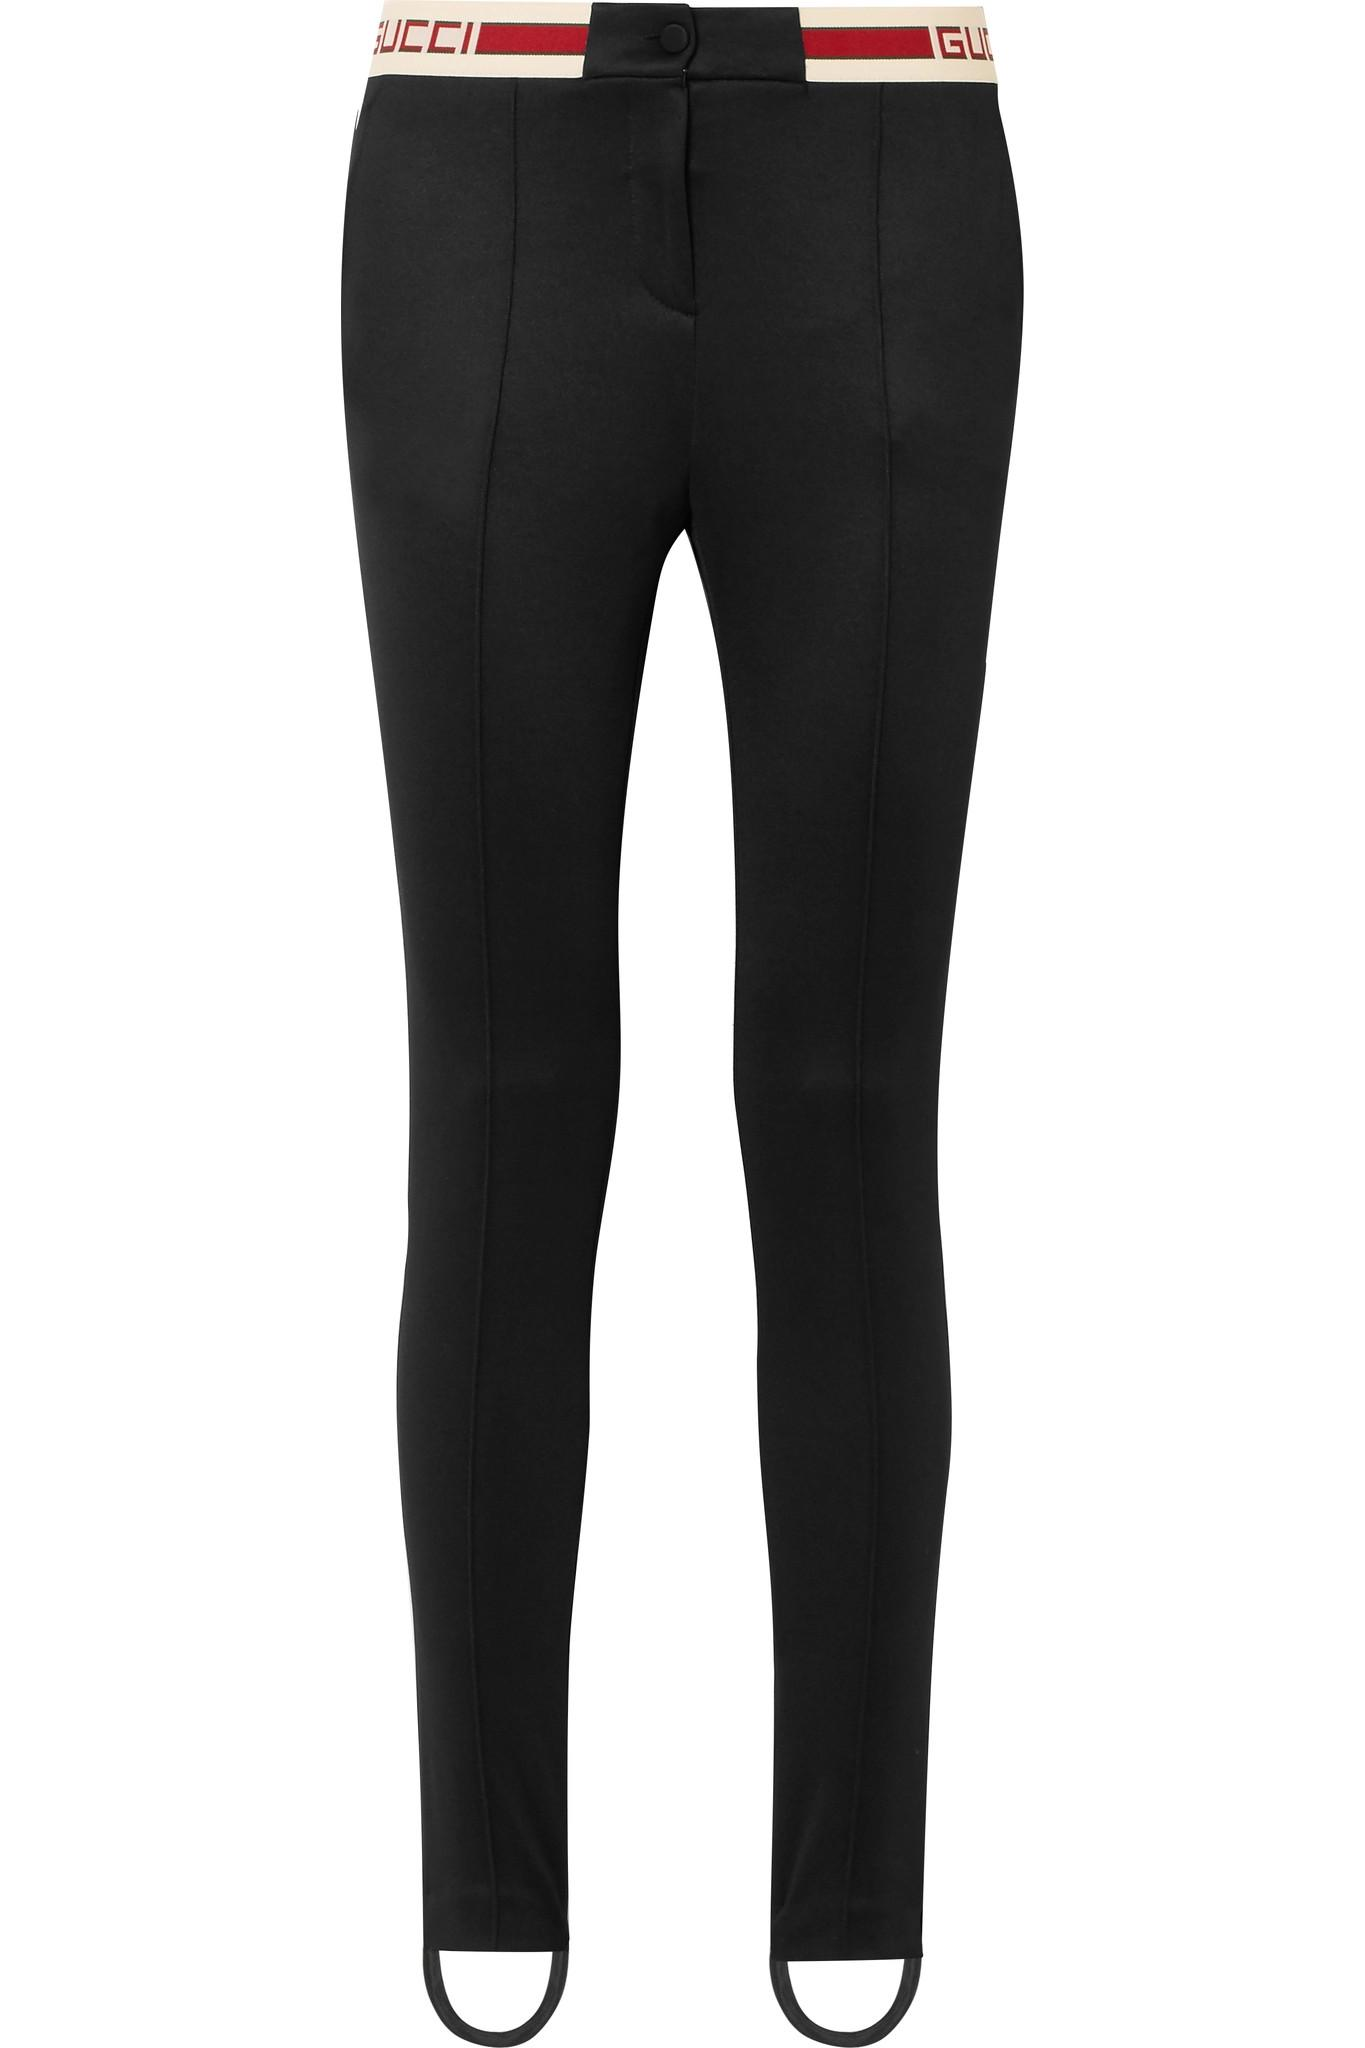 Leggings En Jersey Rayé Gucci pJWZMX1we3